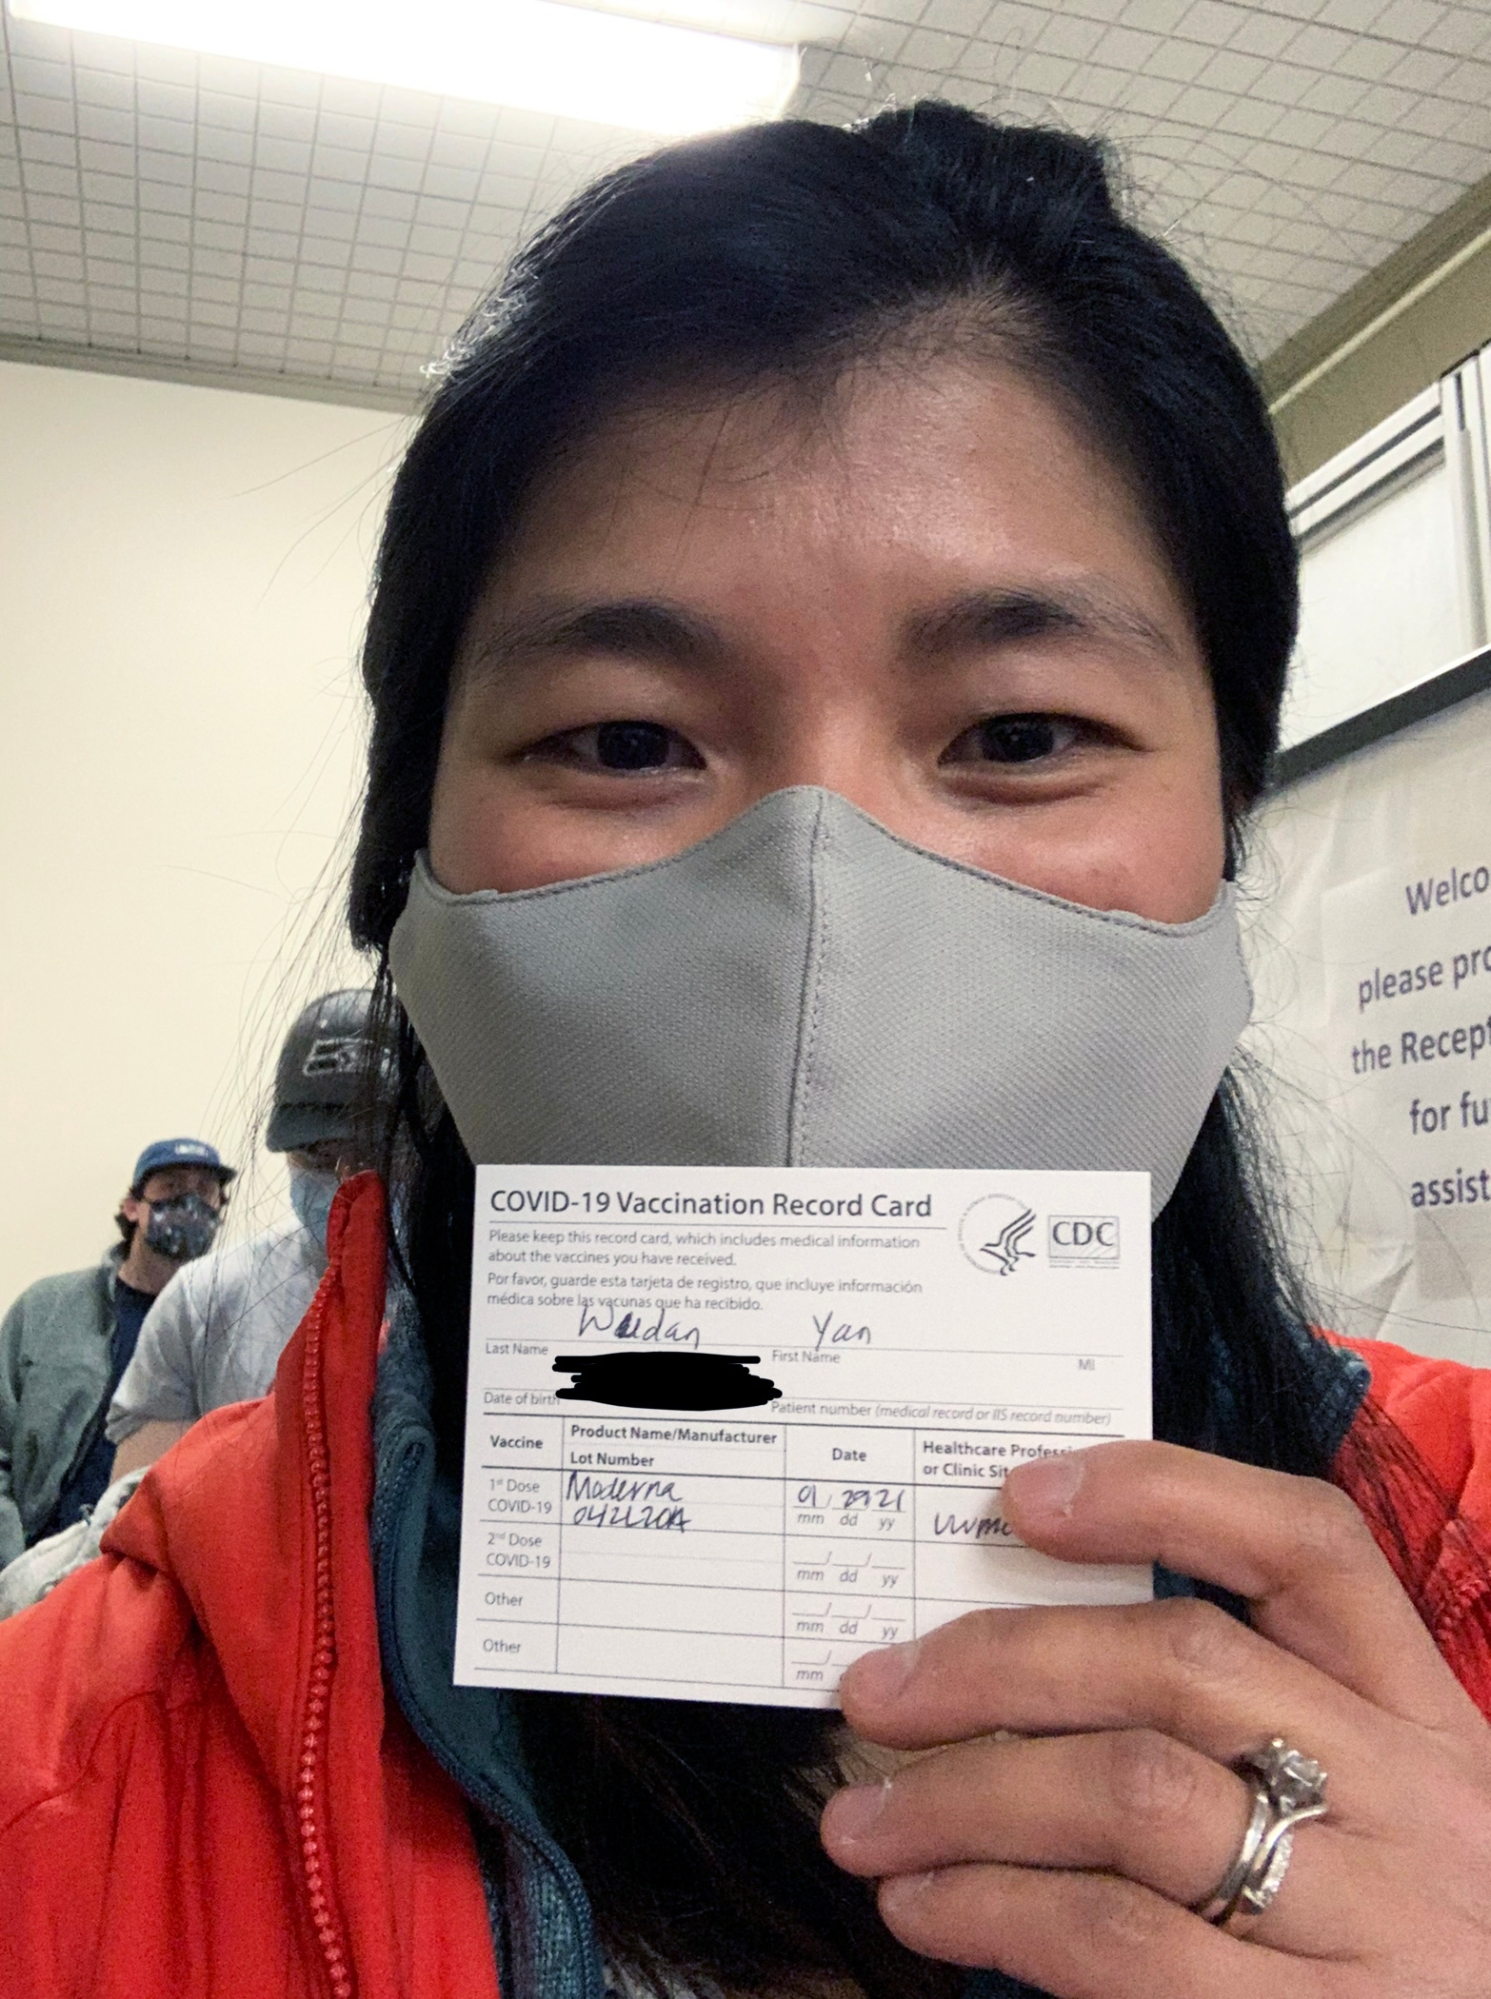 Photograph of Wudan Yan holding her vaccination record card